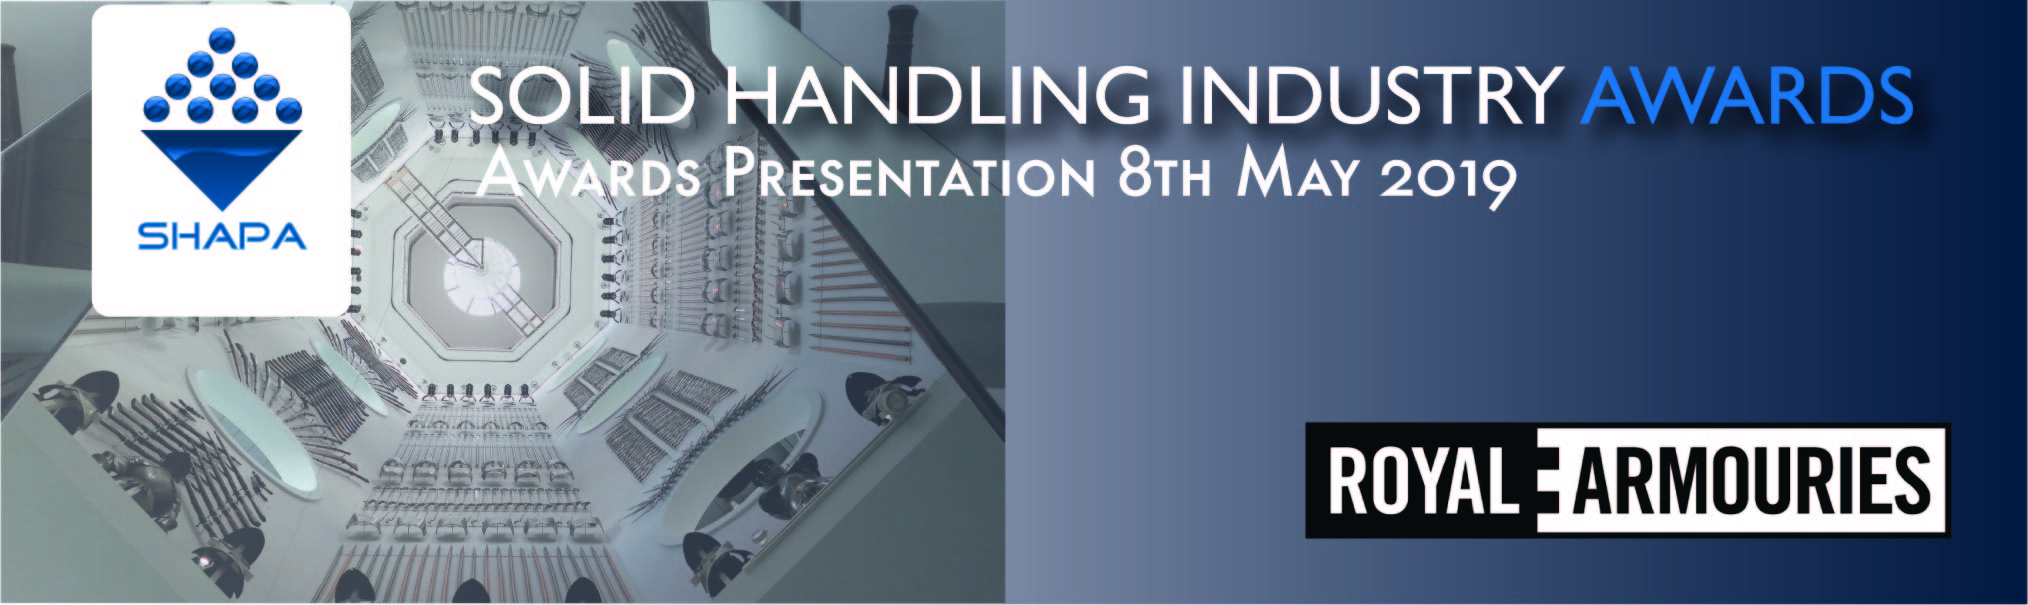 Solids handling industry awards 2019